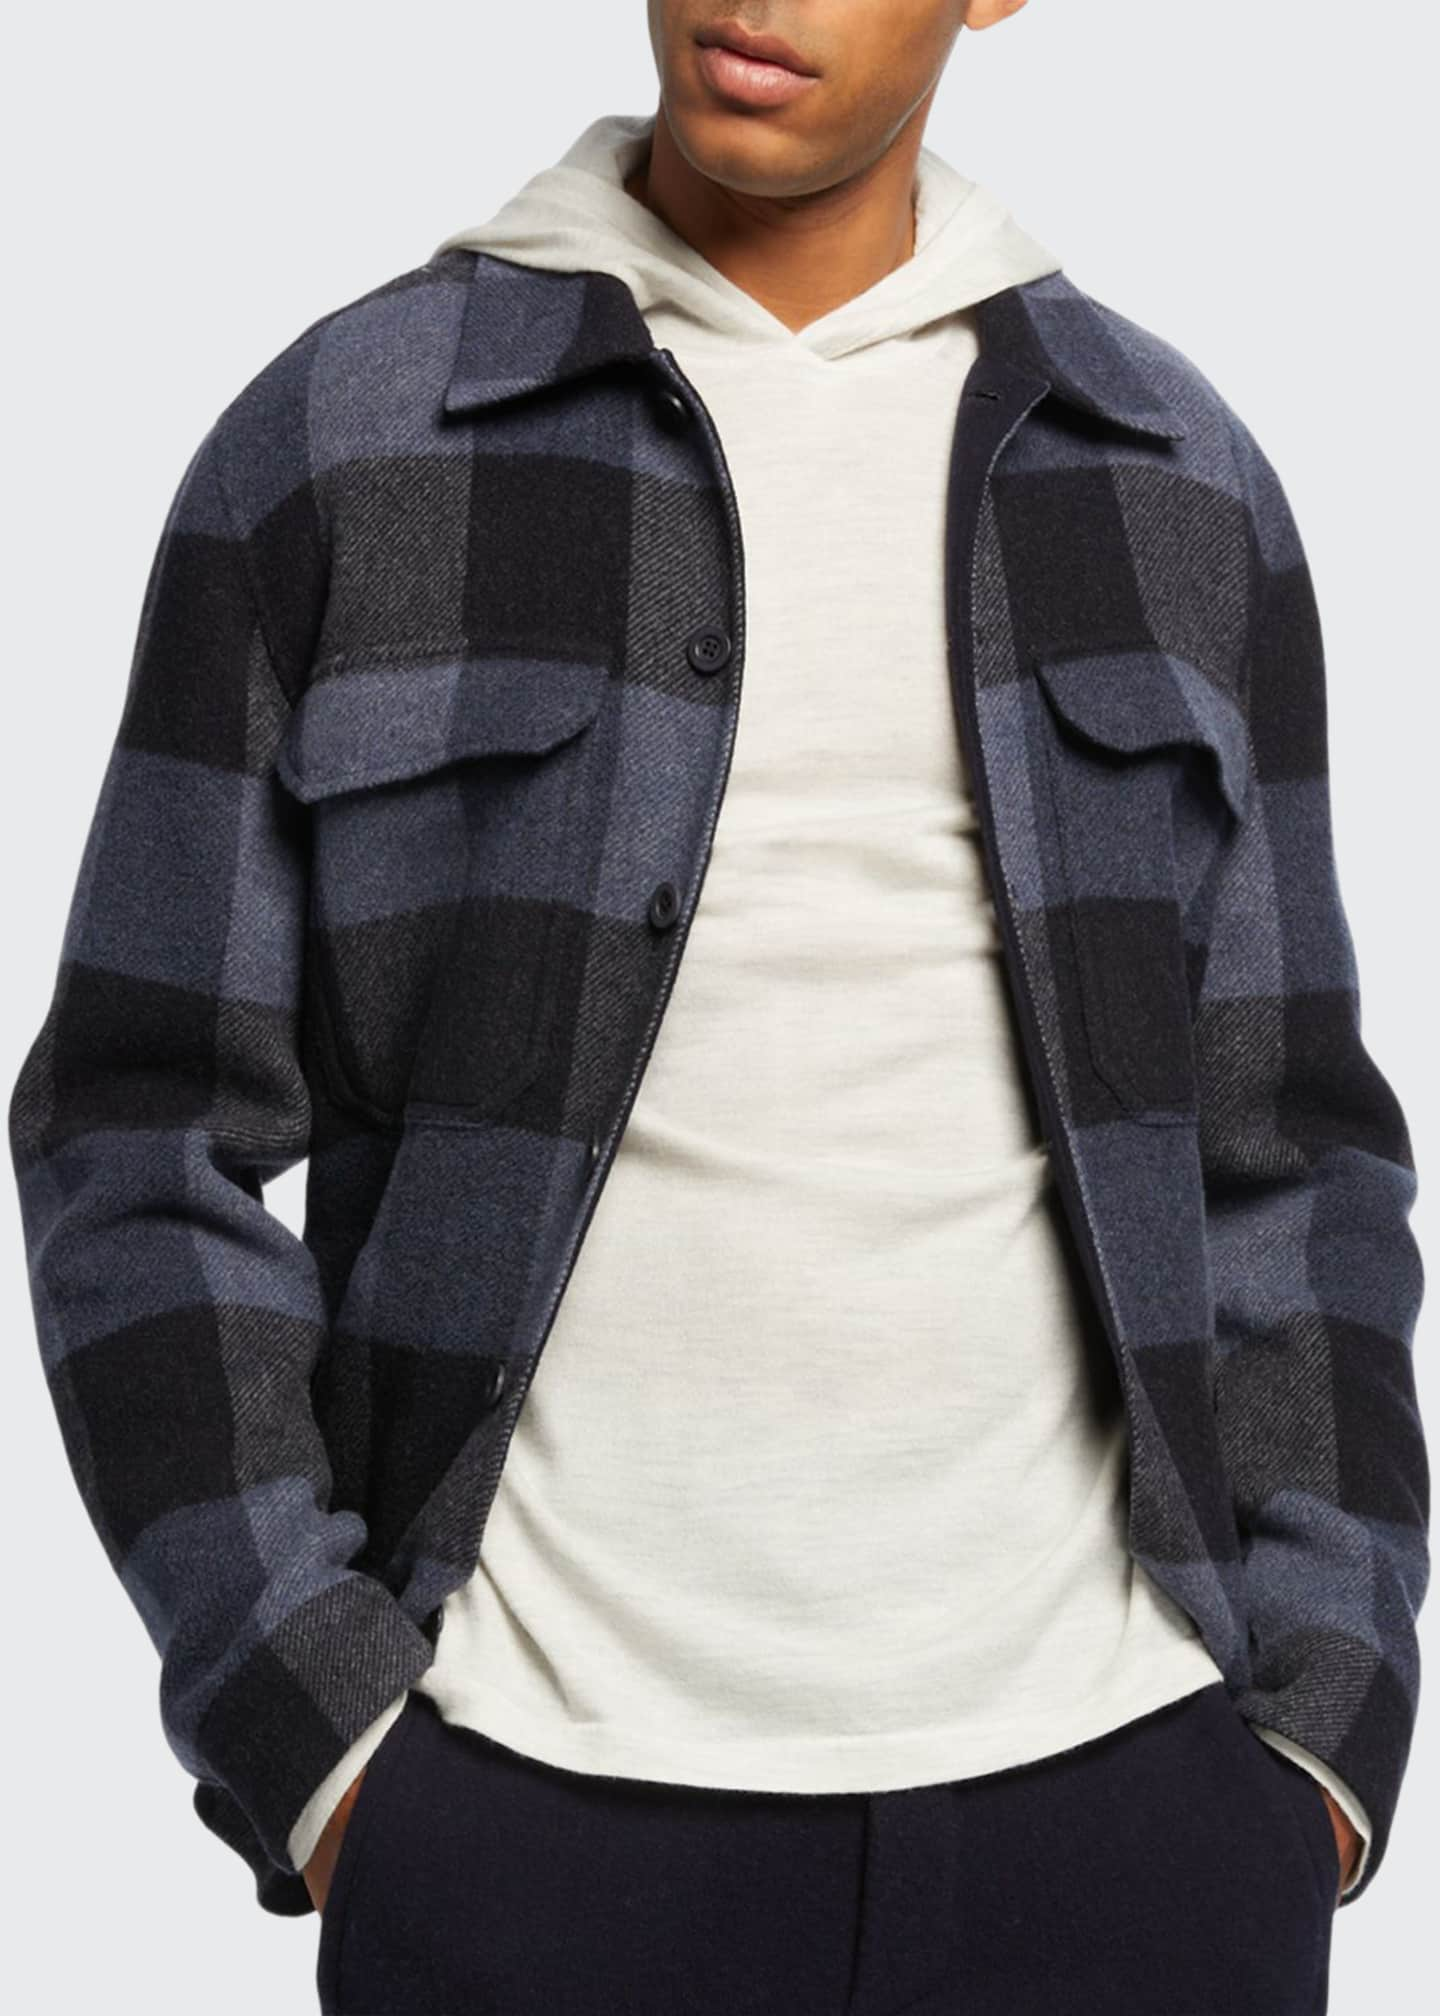 Vince Men's Buffalo Plaid Wool Overshirt